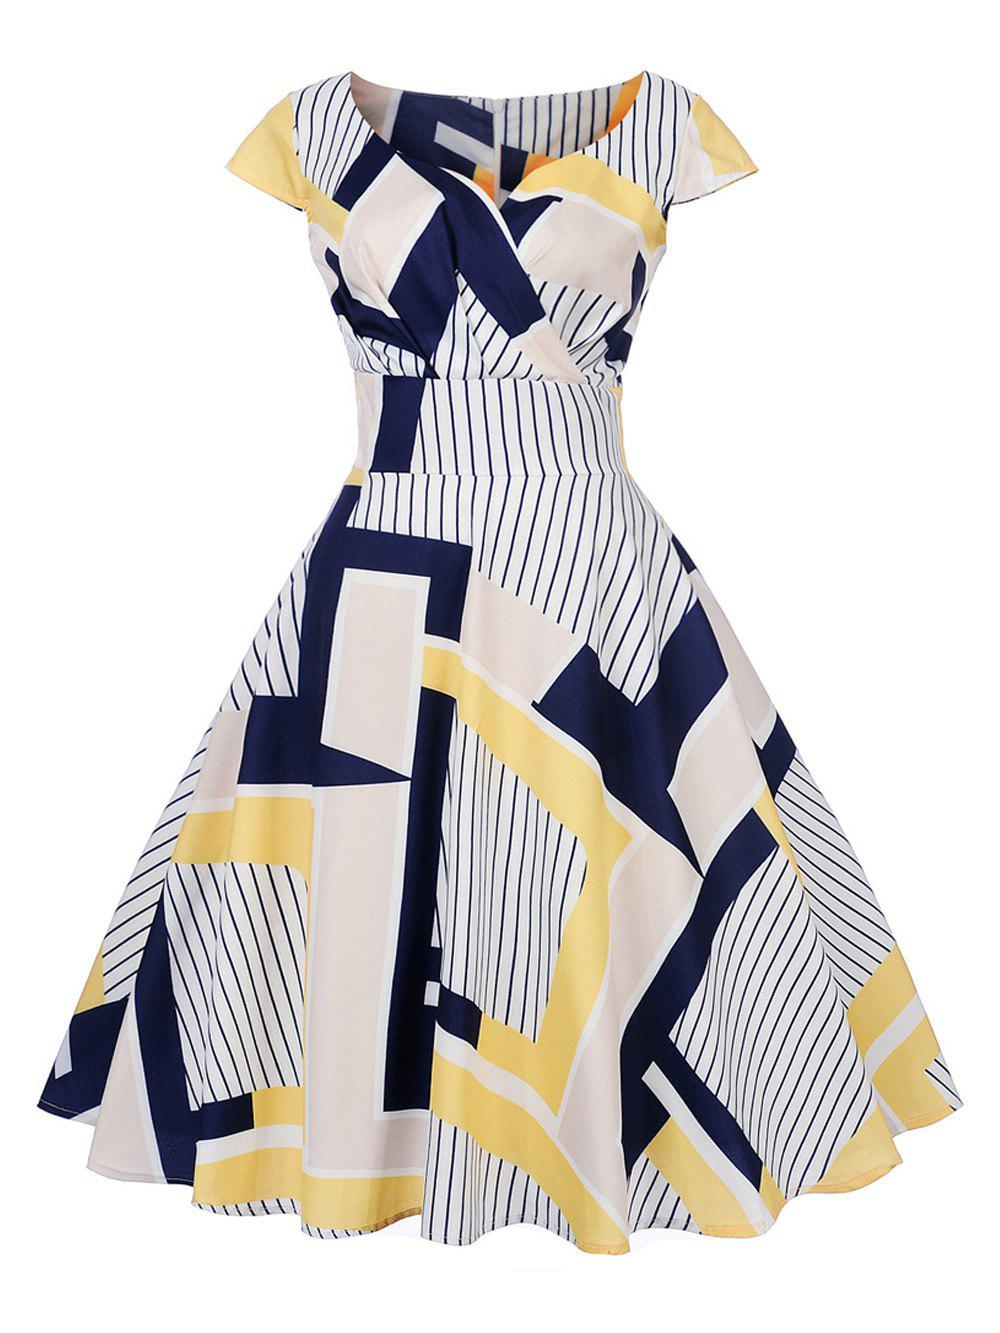 Latest New Women's Vintage 50s 60s Printing Retro Rockabilly Pinup Housewife Party Swing Dress